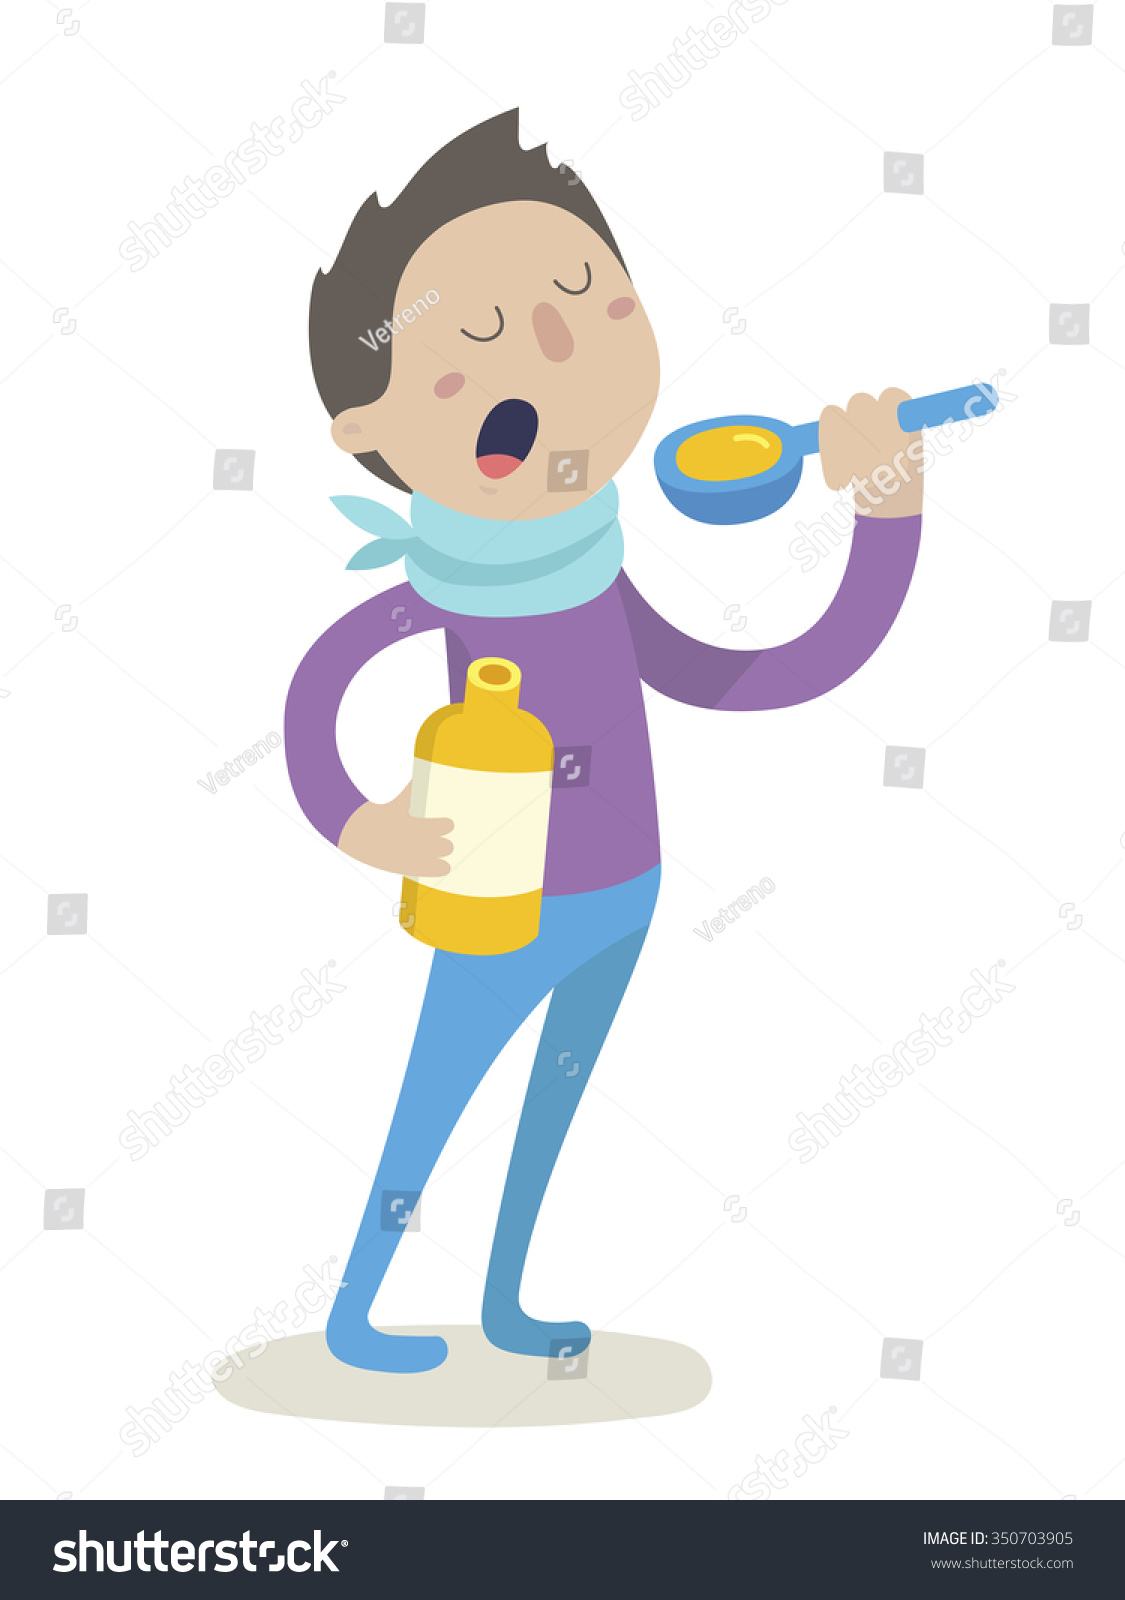 sick boy flu virus takes cough stock vector royalty free 350703905 https www shutterstock com image vector sick boy flu virus takes cough 350703905